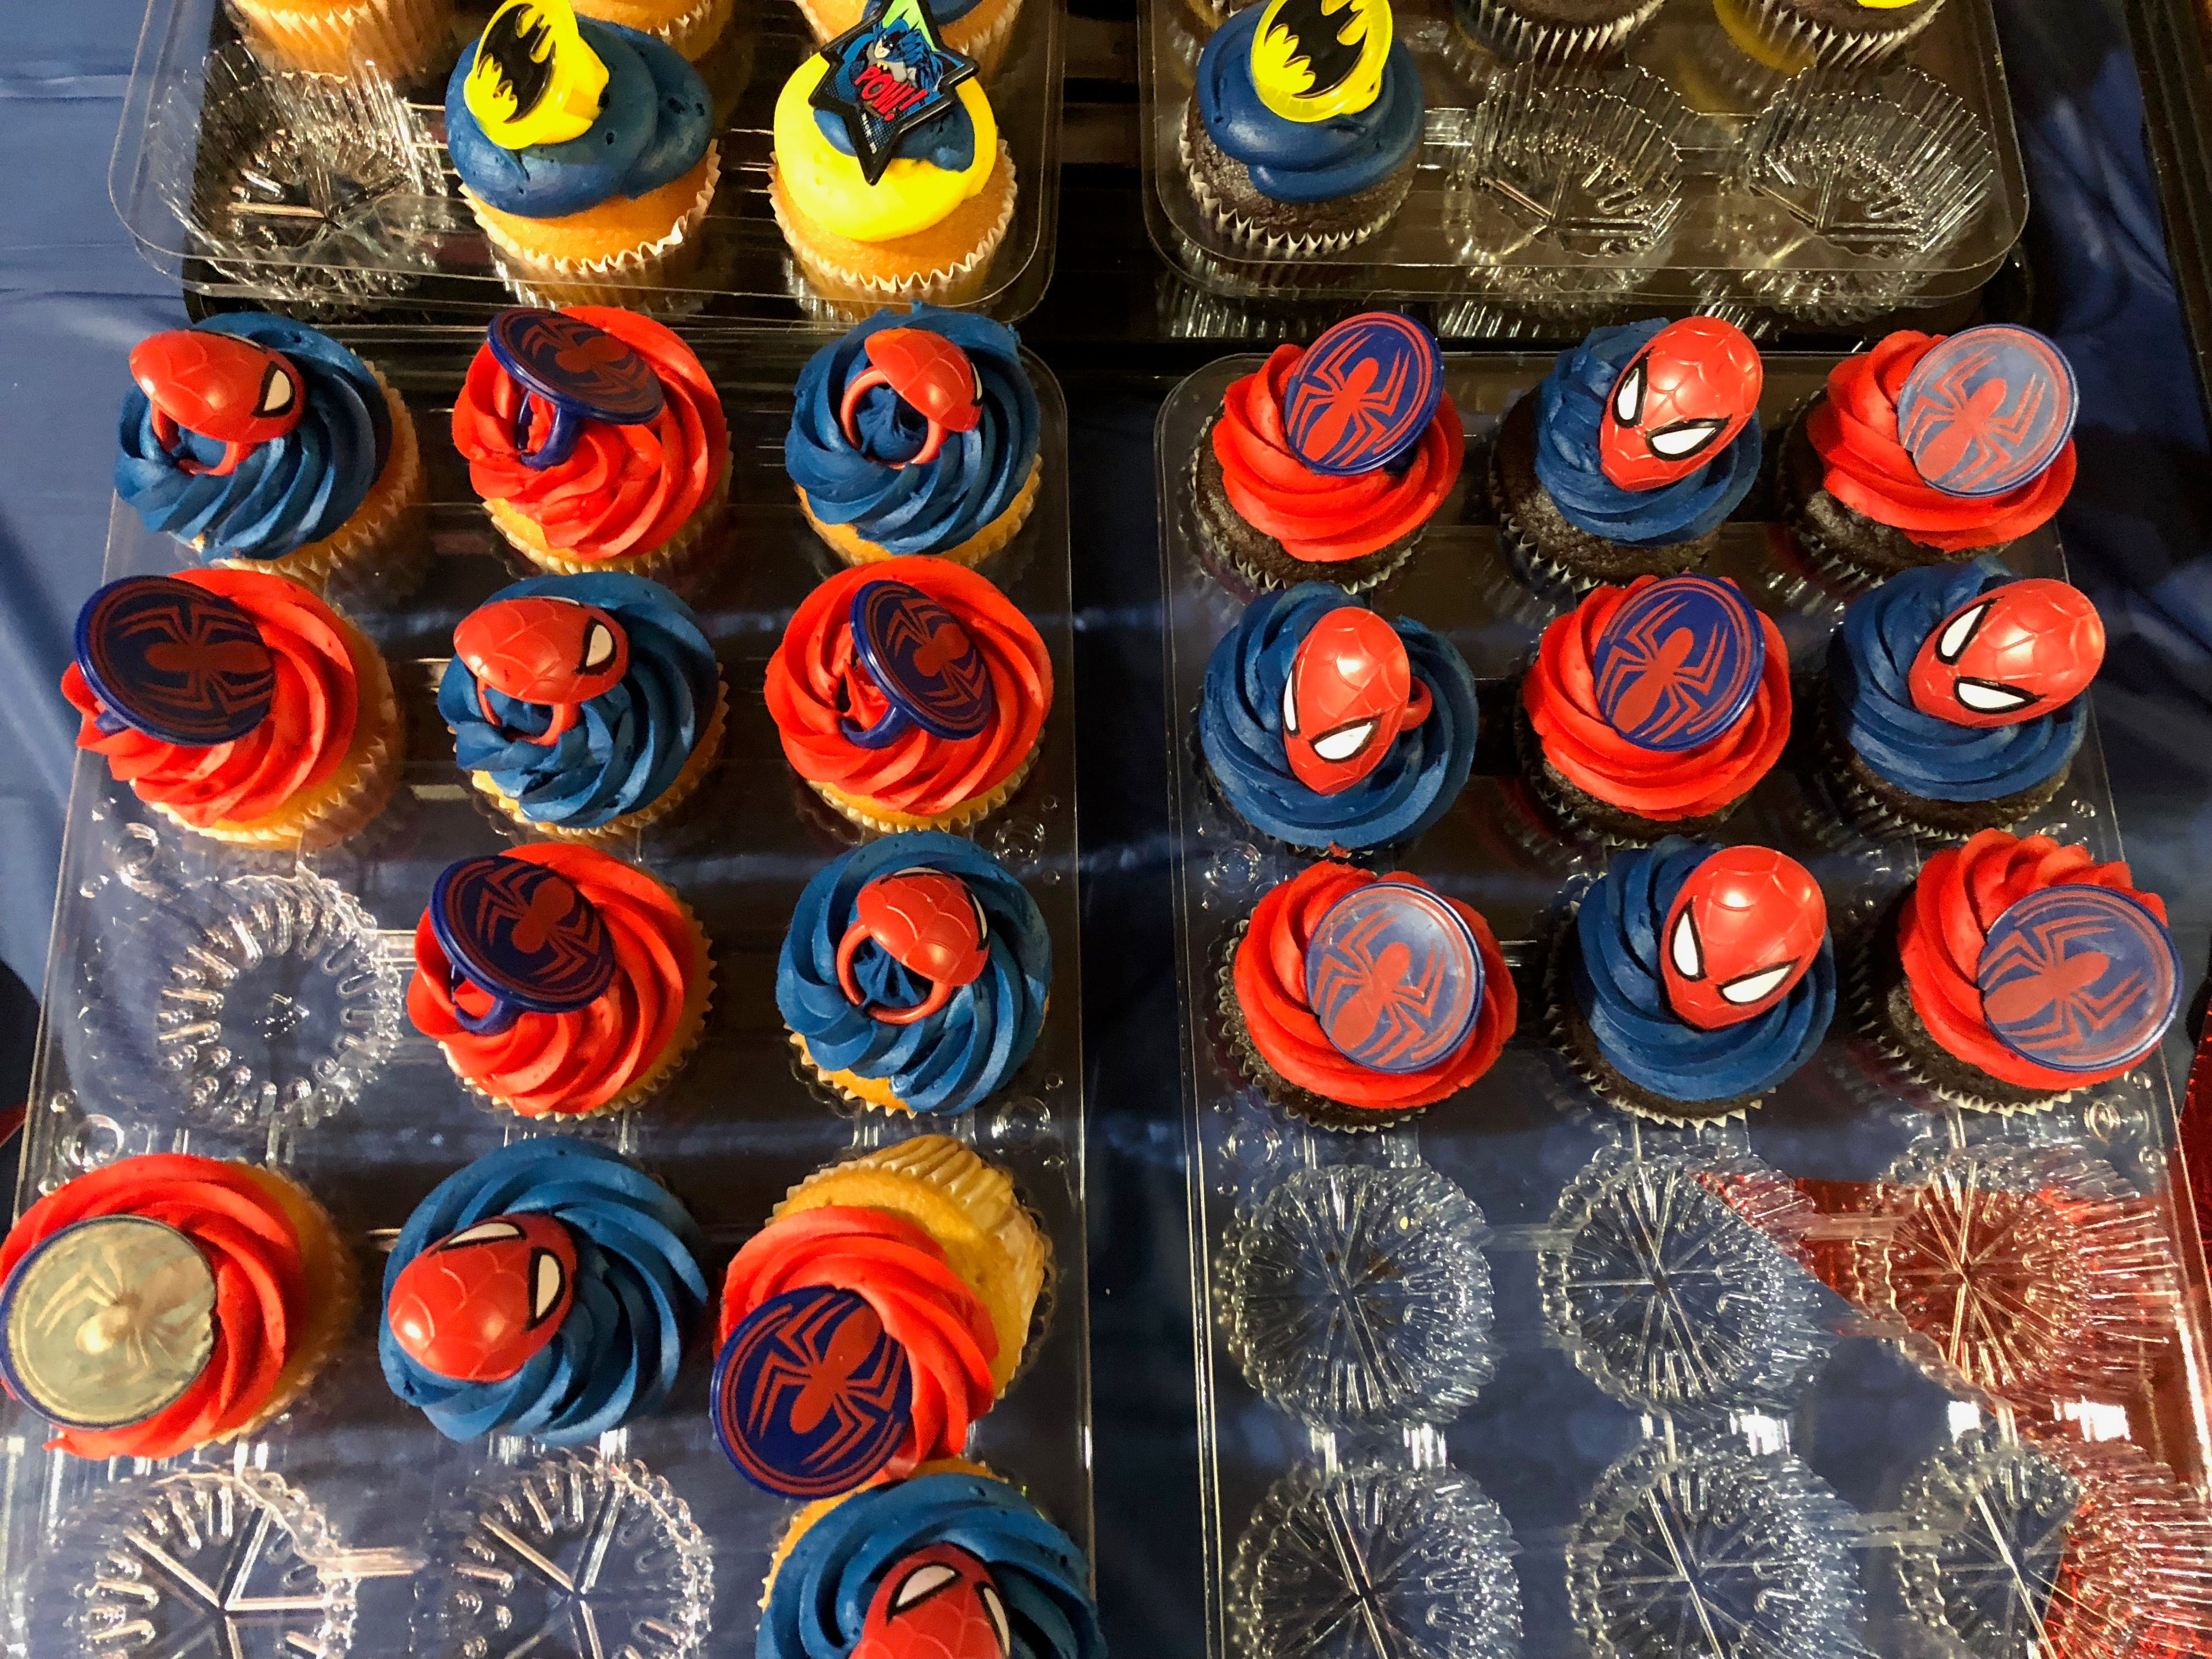 Colorful cupcakes greeted people taking part at the National Adoption Day event Saturday, Nov. 17, 2018, at the El Paso County Courthouse. A total of 29 children were officially adopted by 12 El Paso families.